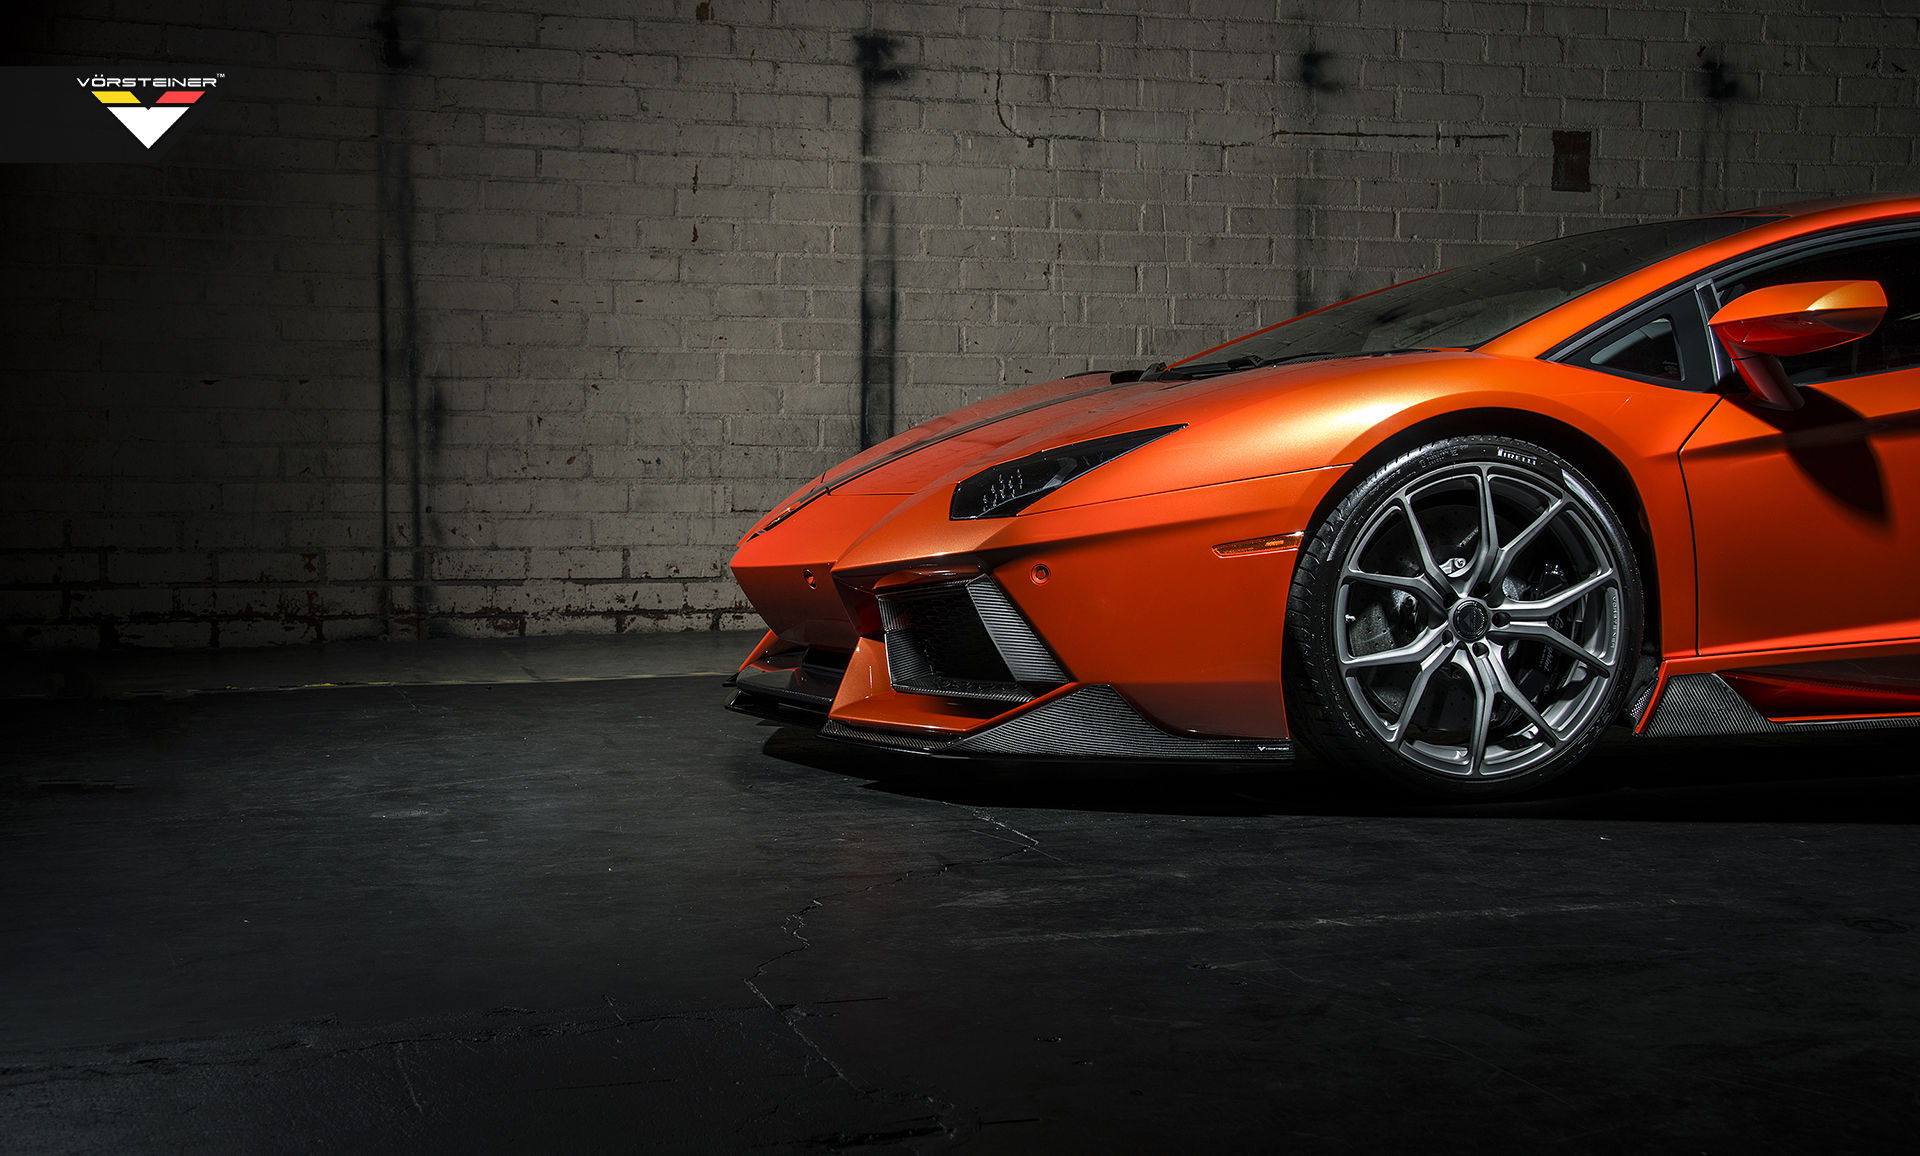 2014 Lamborghini Aventador | Lamborghini AVENTADOR-V for the COUPE / ROADSTER